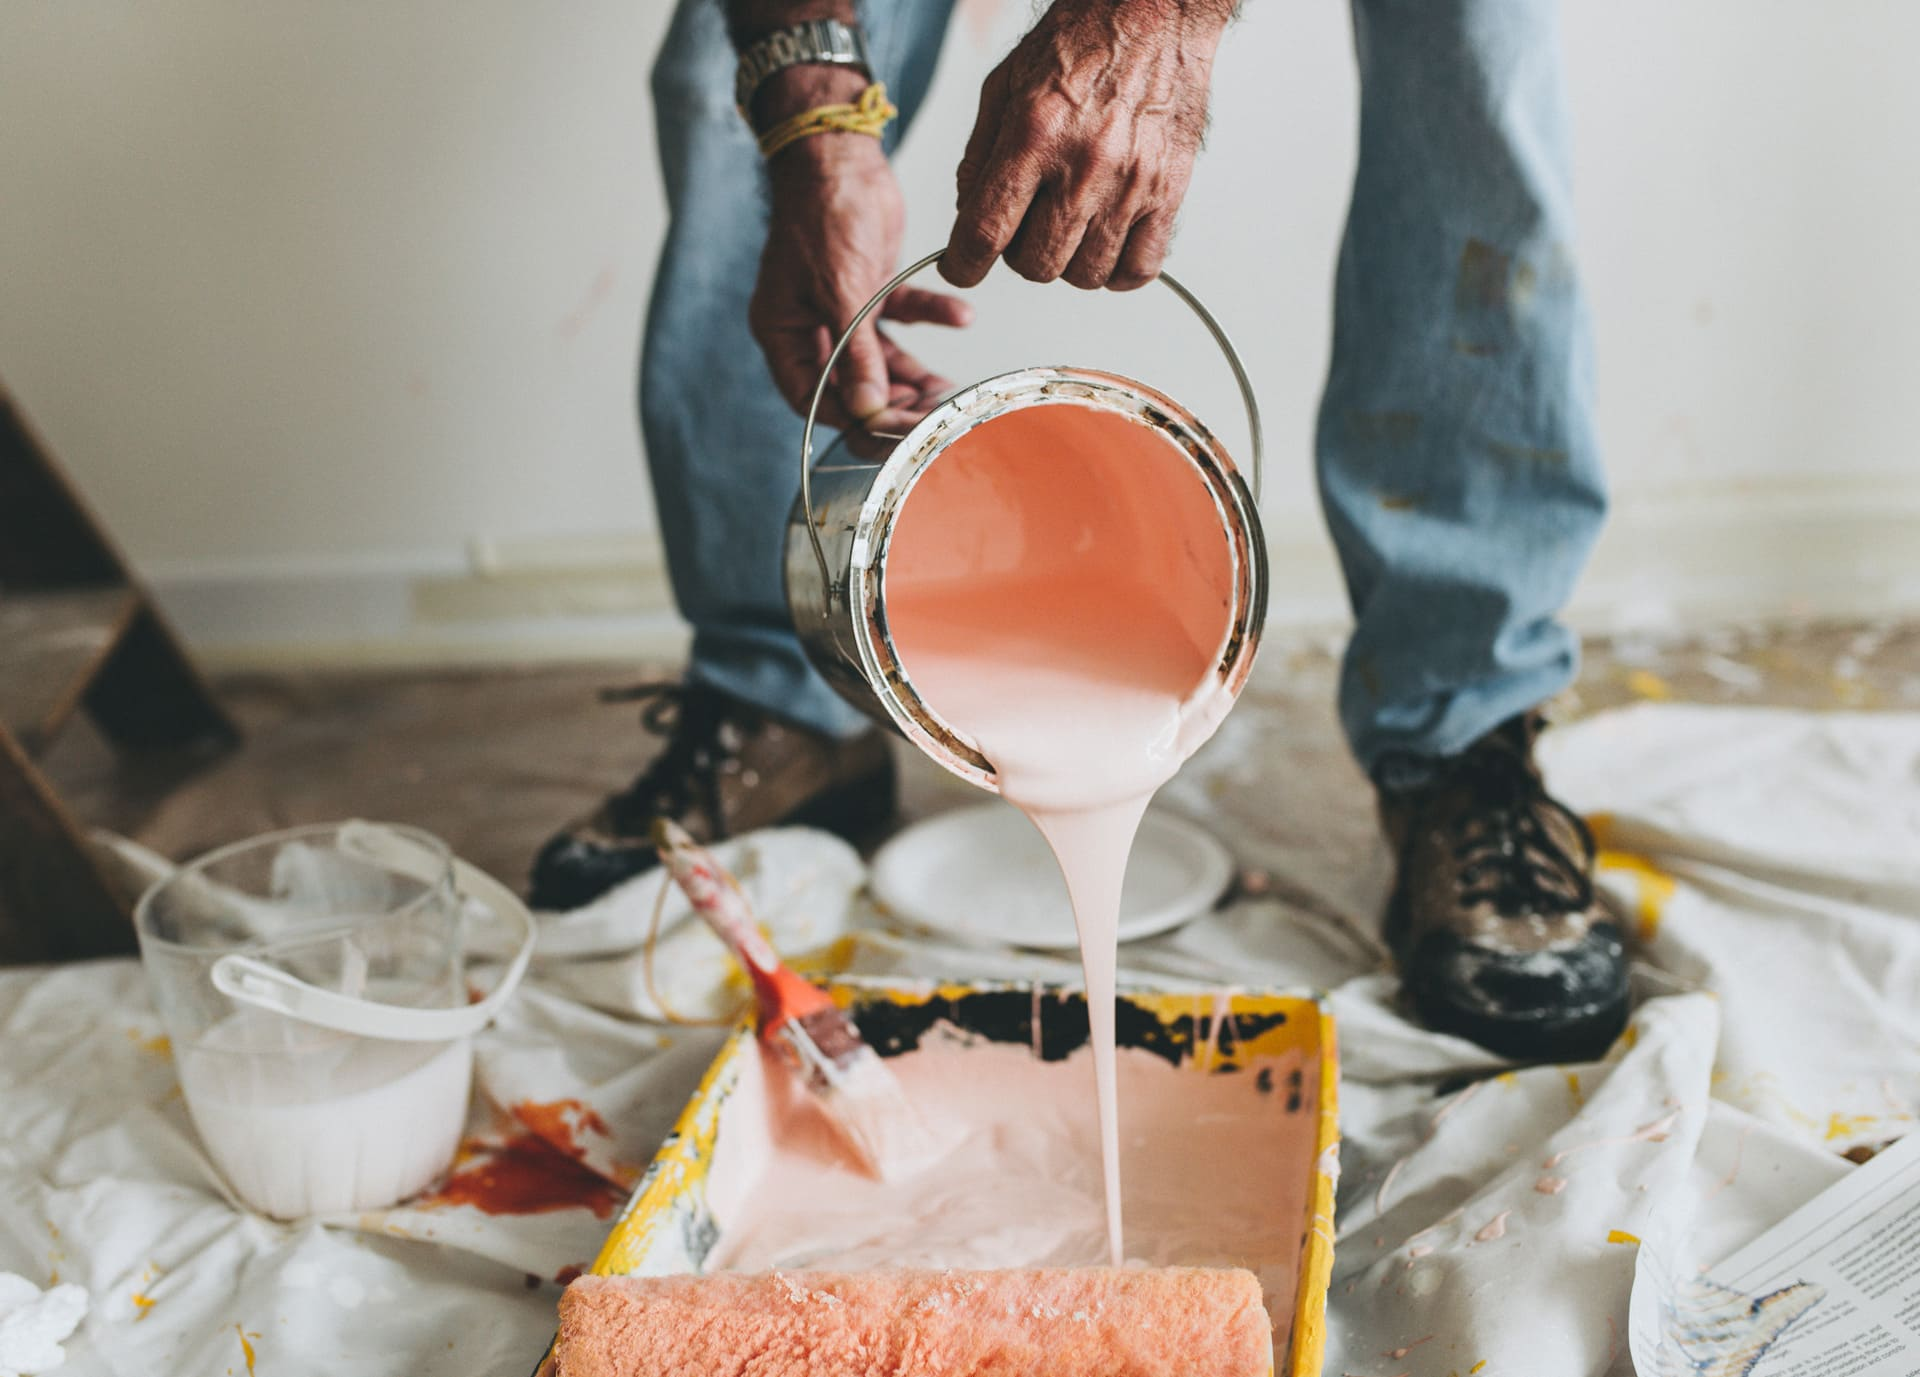 Compare offers from regional painters